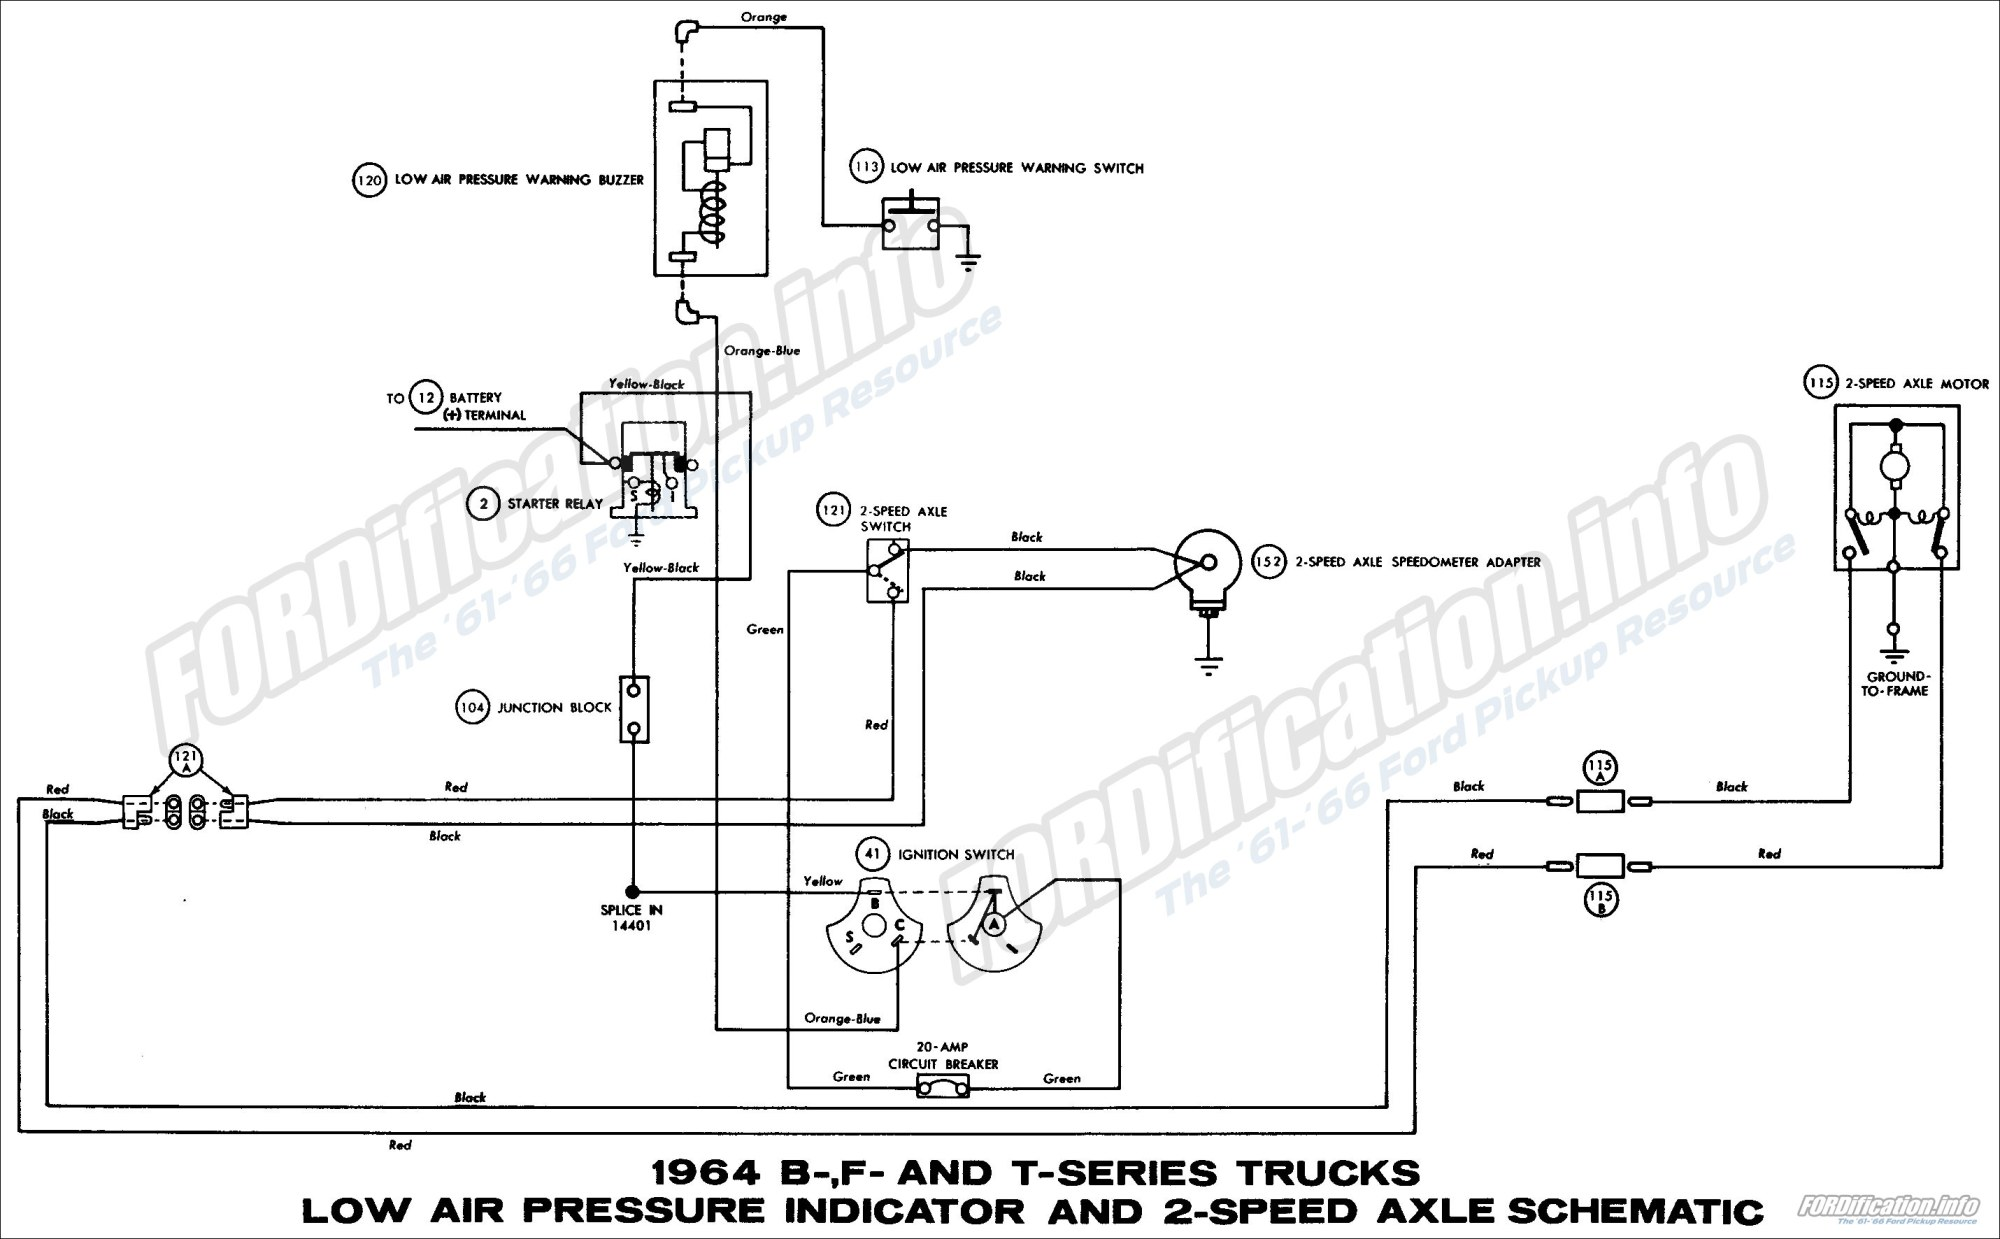 hight resolution of 1964 ford truck wiring diagrams fordification info the 61 66 1964 ford truck wiring